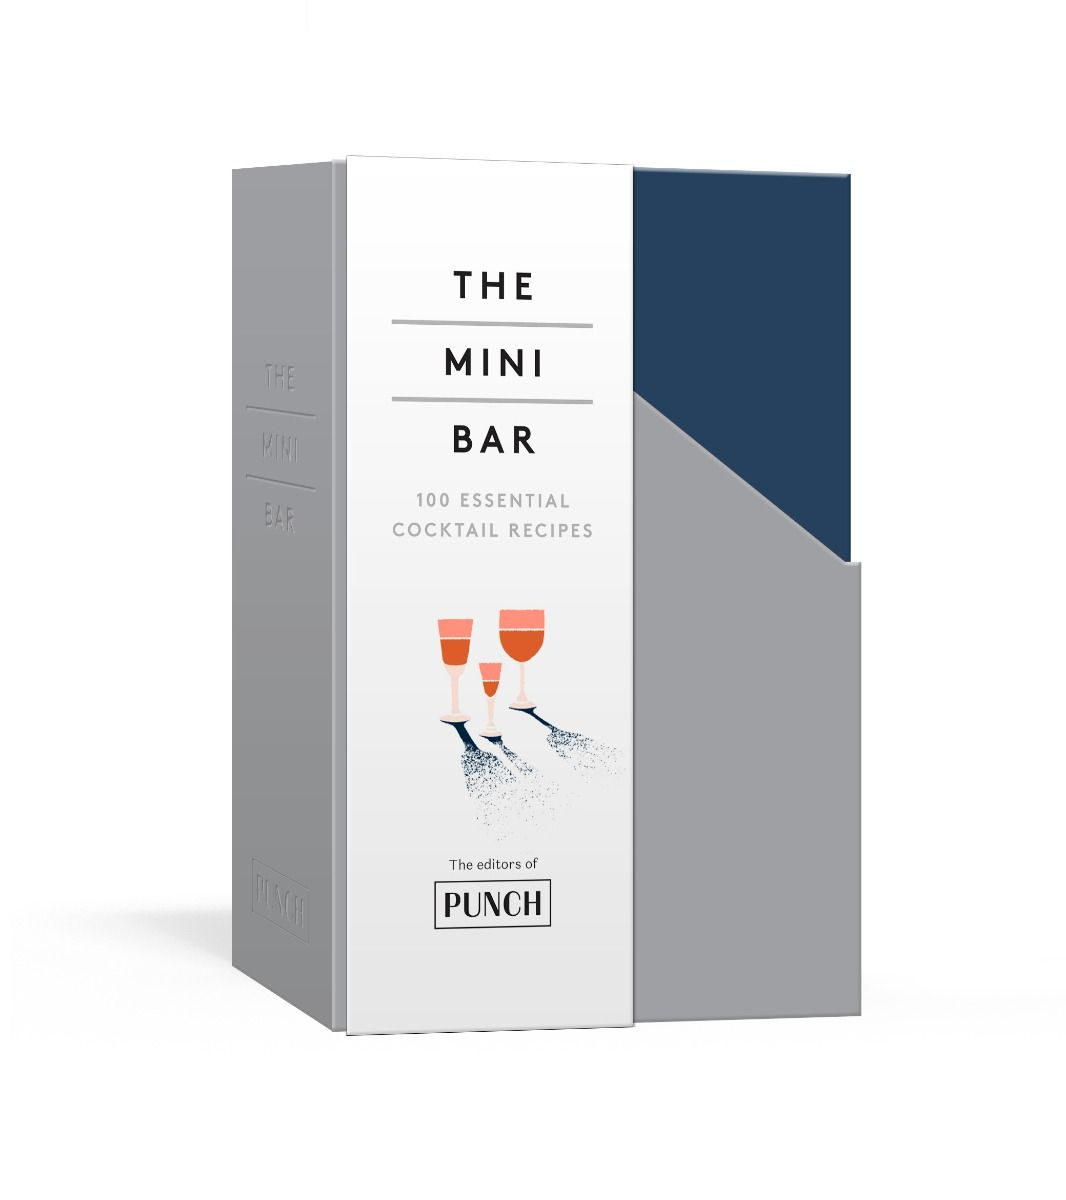 The Mini Bar 100 Essential Cocktail Recipes Book Set